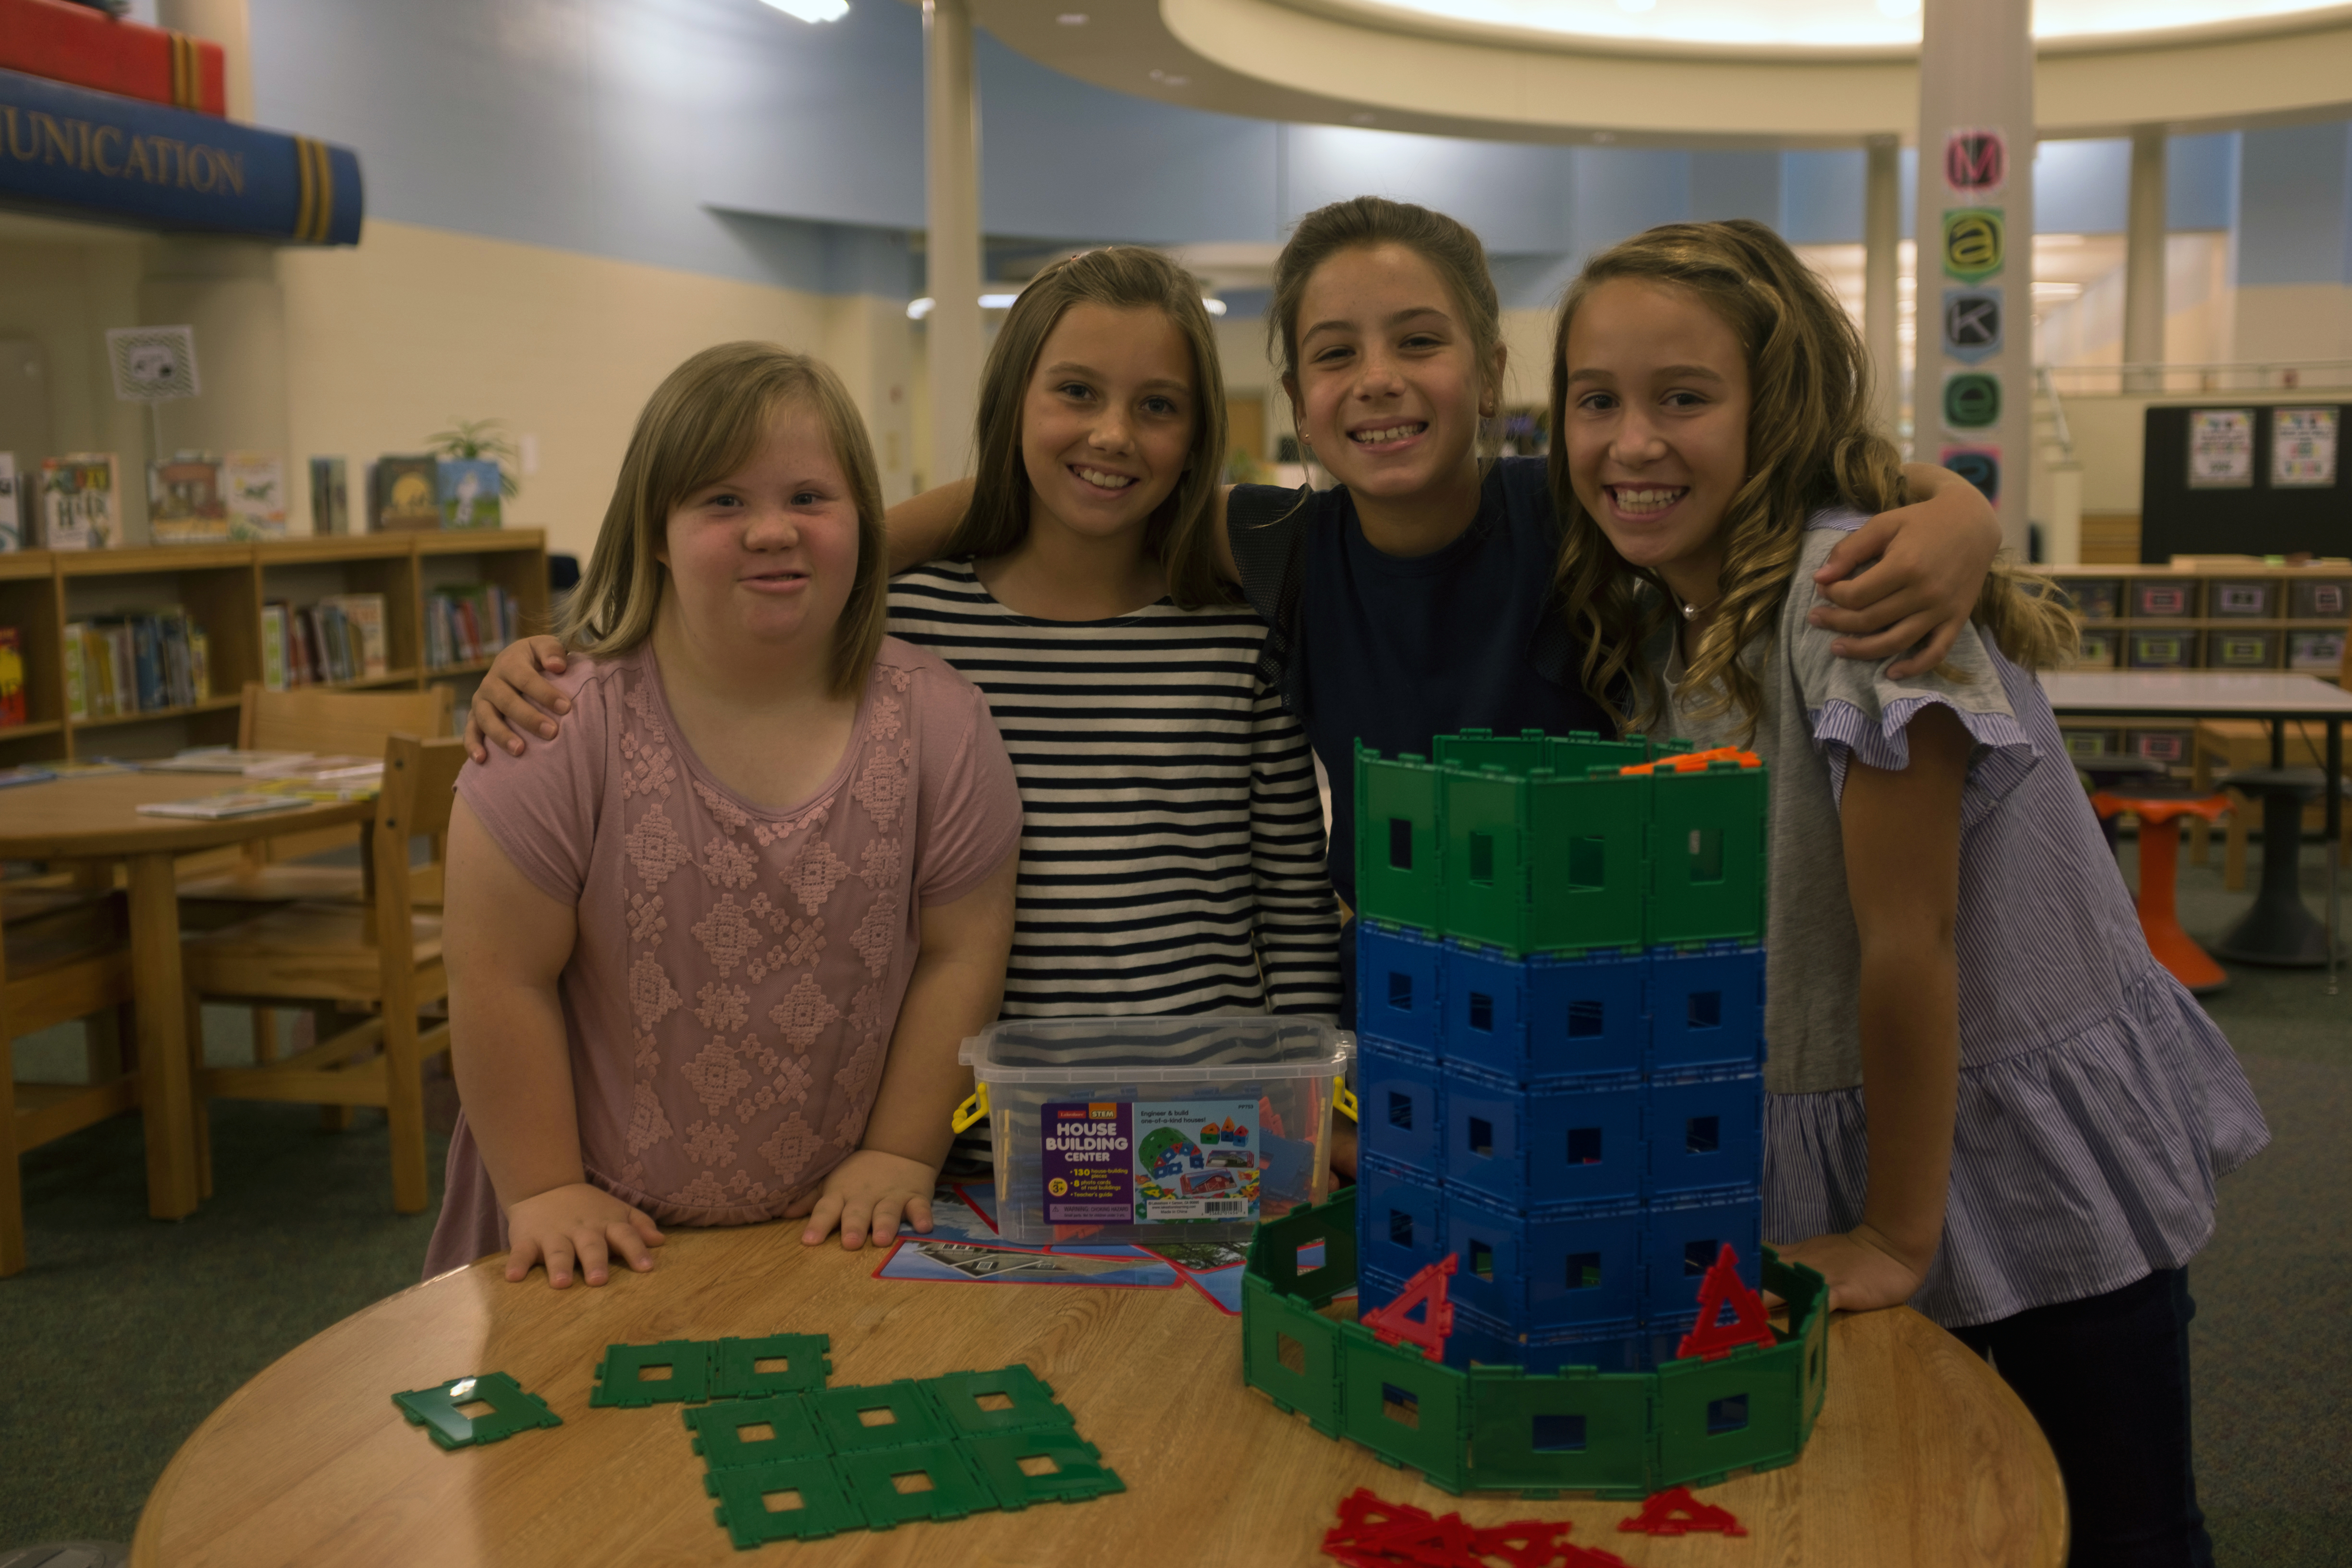 Girls at elementary school, including student with Down syndrome